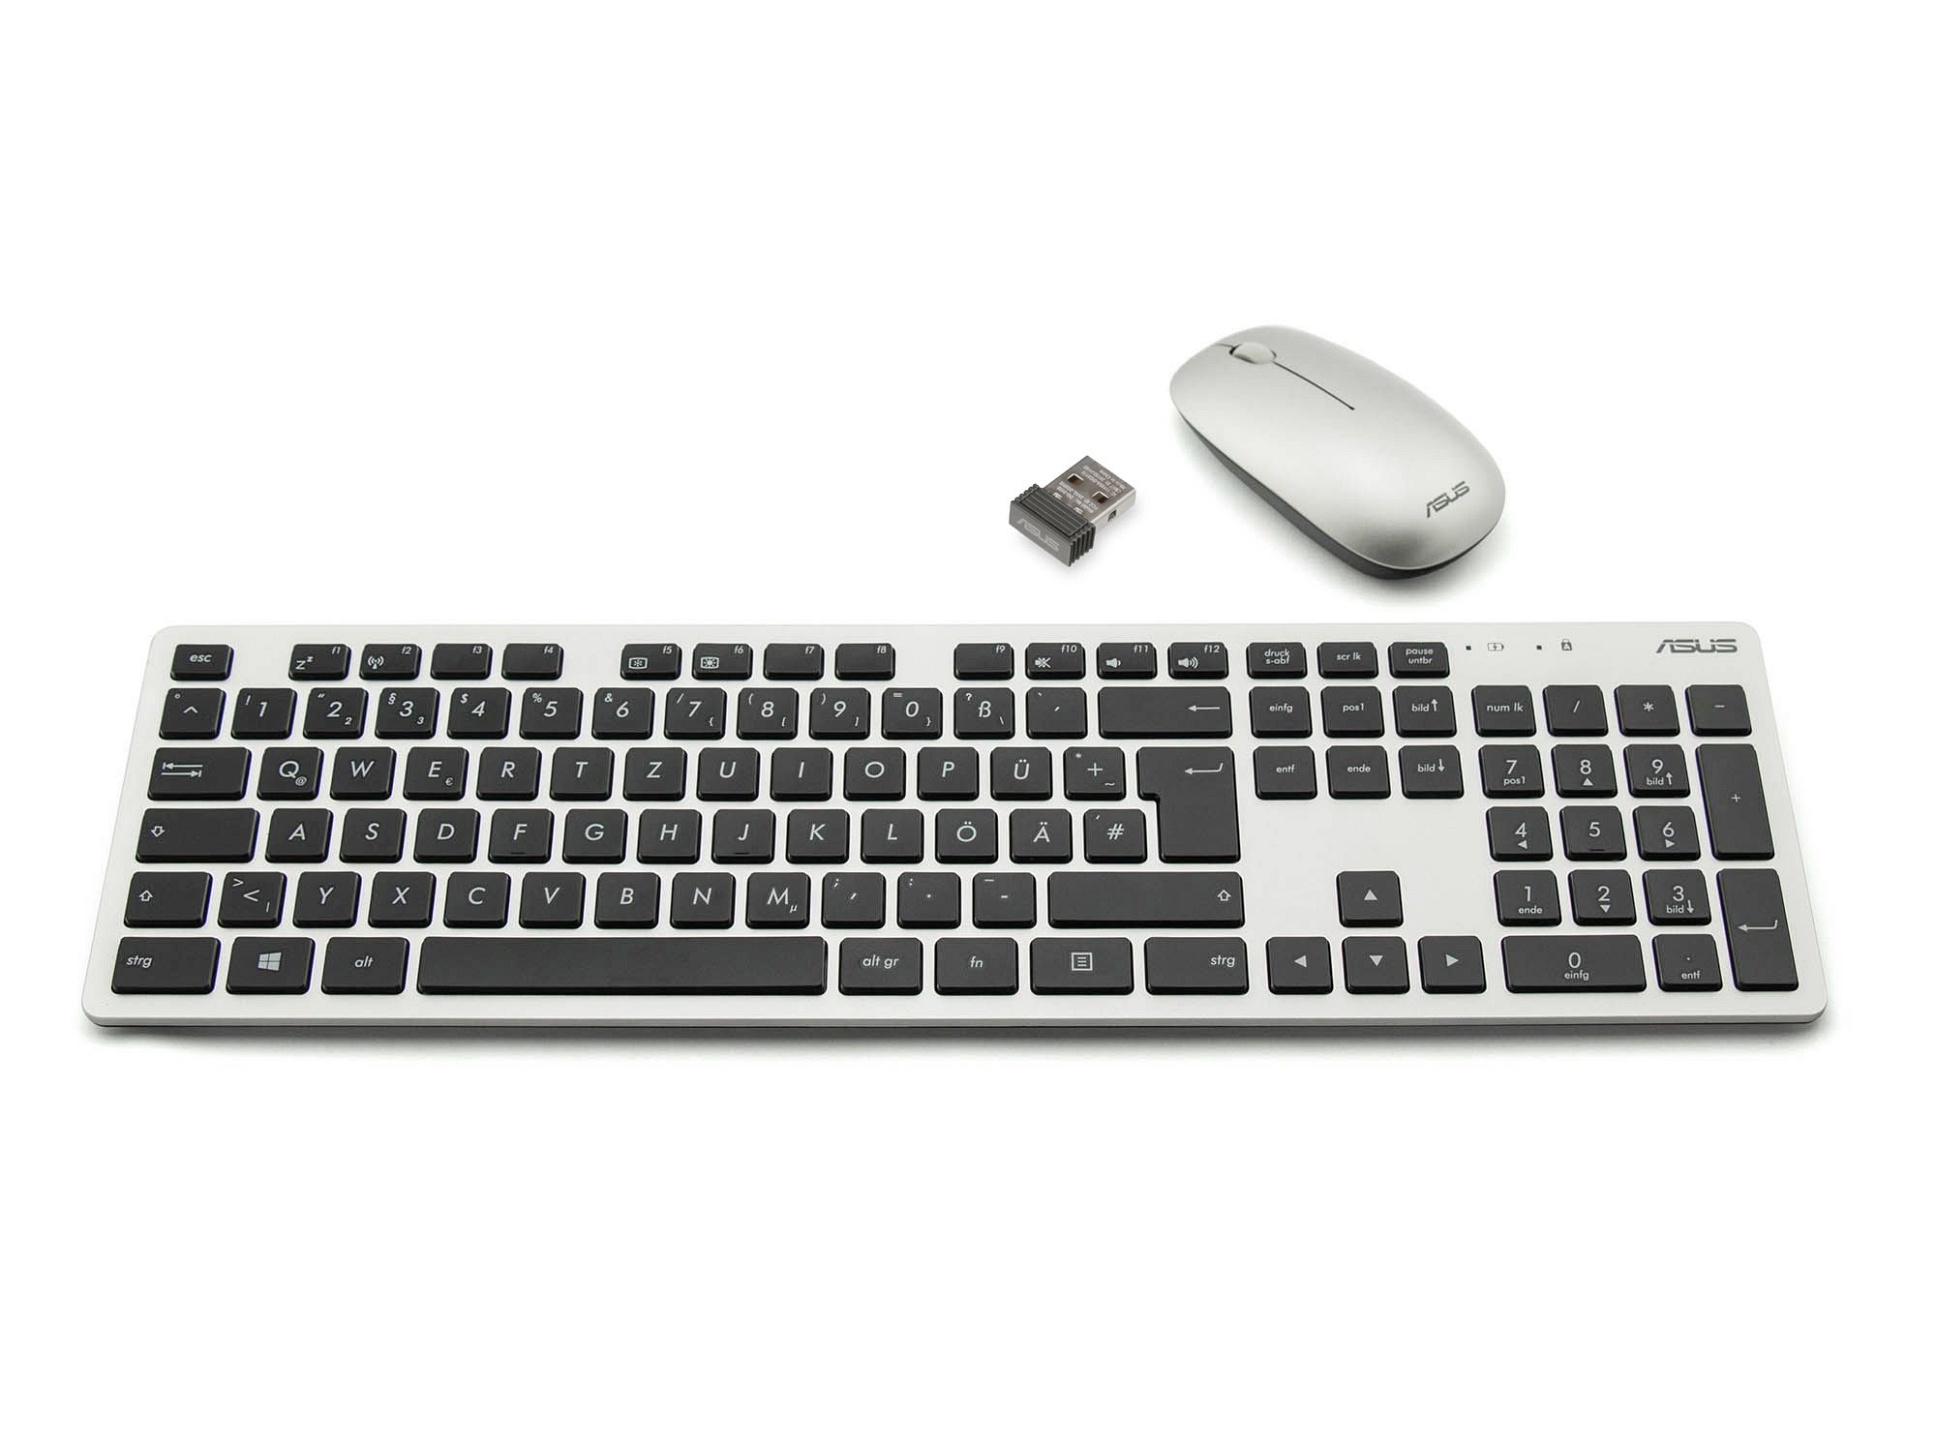 Asus MD-5110 Wireless Tastatur/Maus Kit (DE)